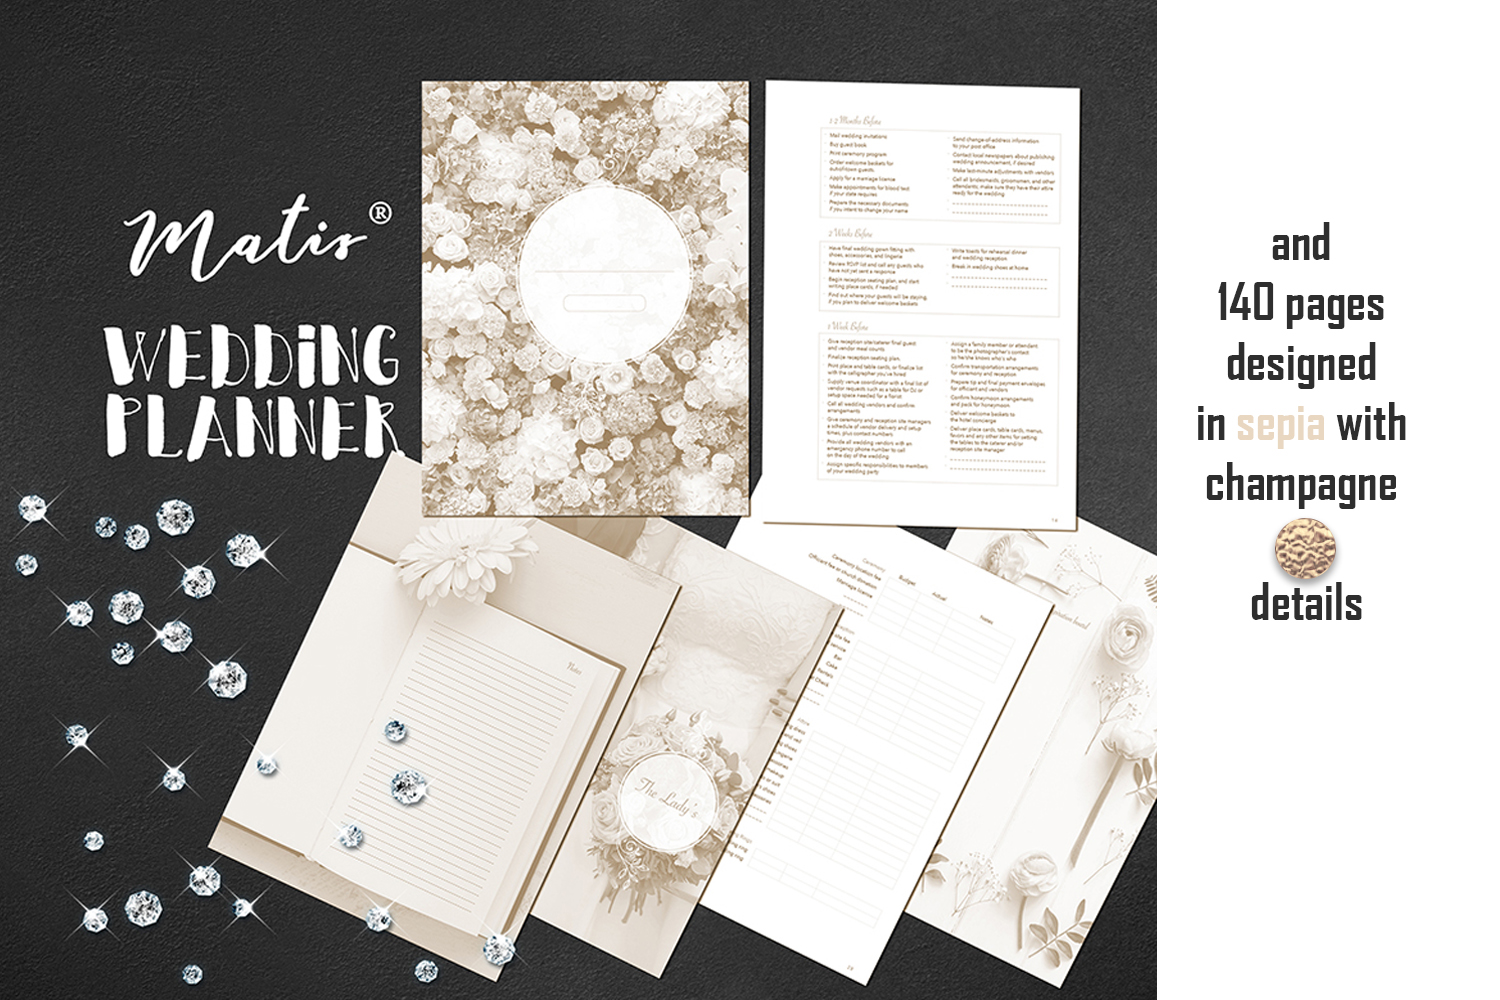 Wedding planner printable / personalization included example image 3